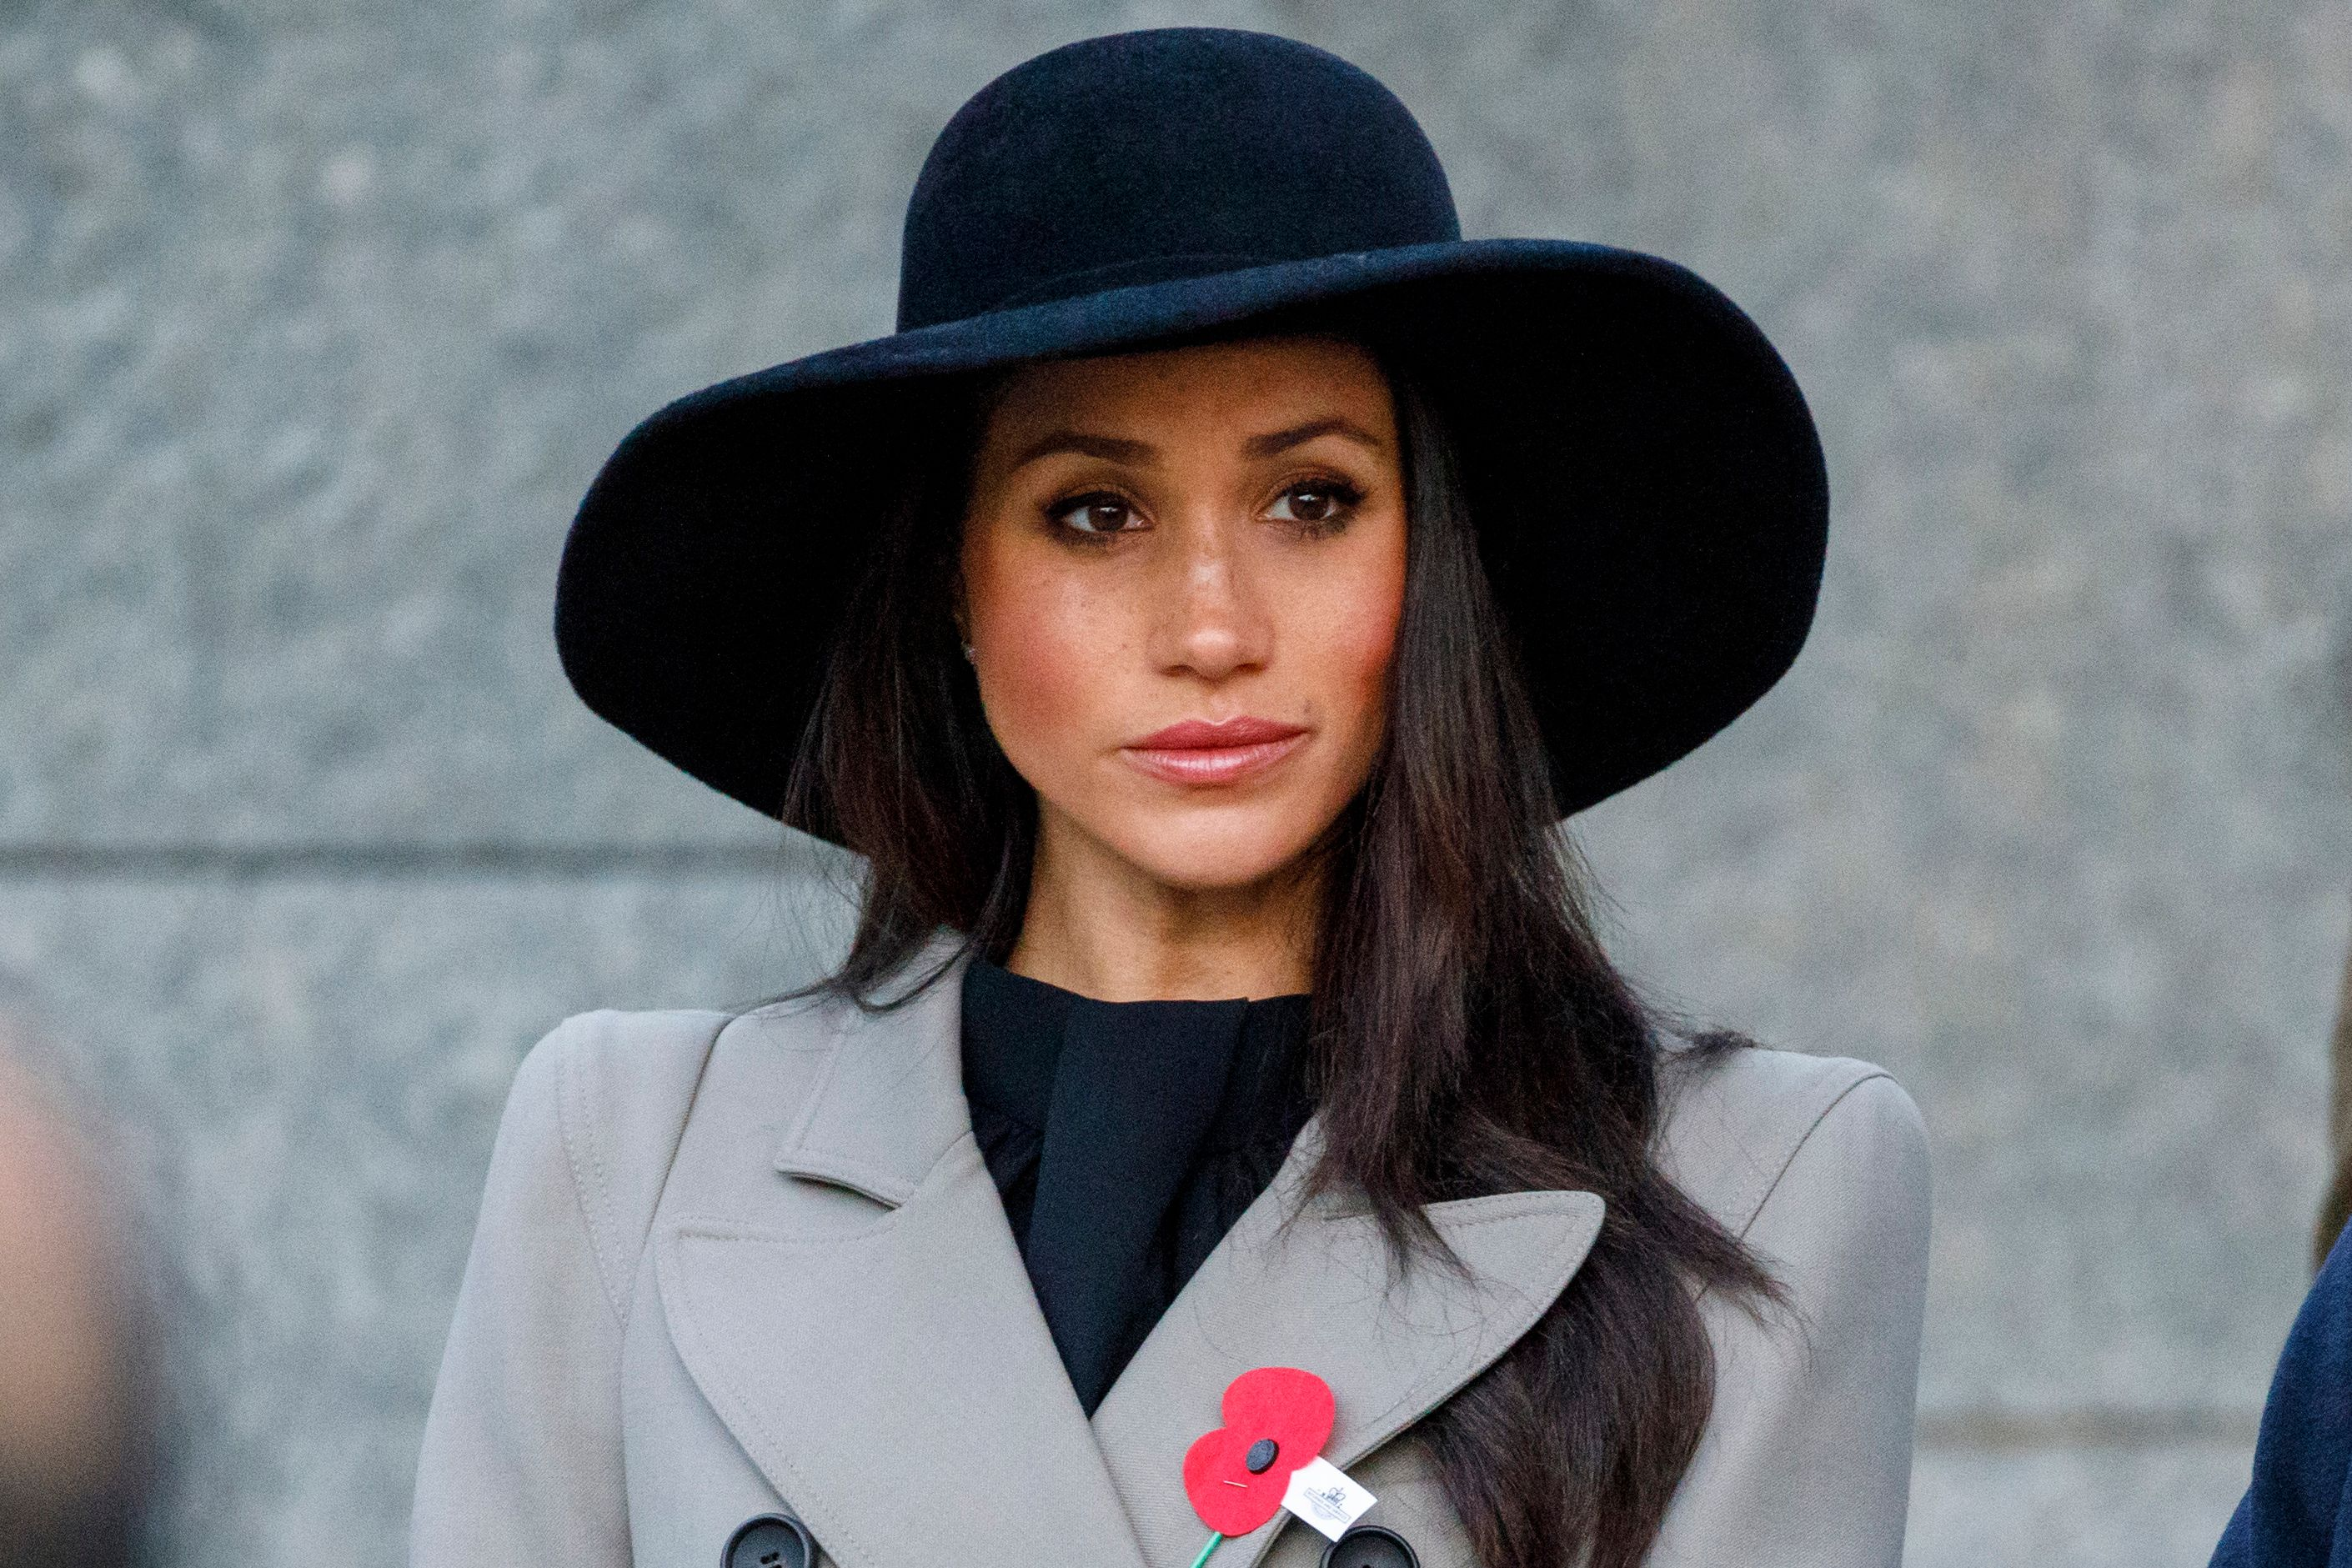 Meghan Markle attends an Anzac Day dawn service at Hyde Park Corner in London on April 25, 2018. (TOLGA AKMEN/AFP/Getty Images)